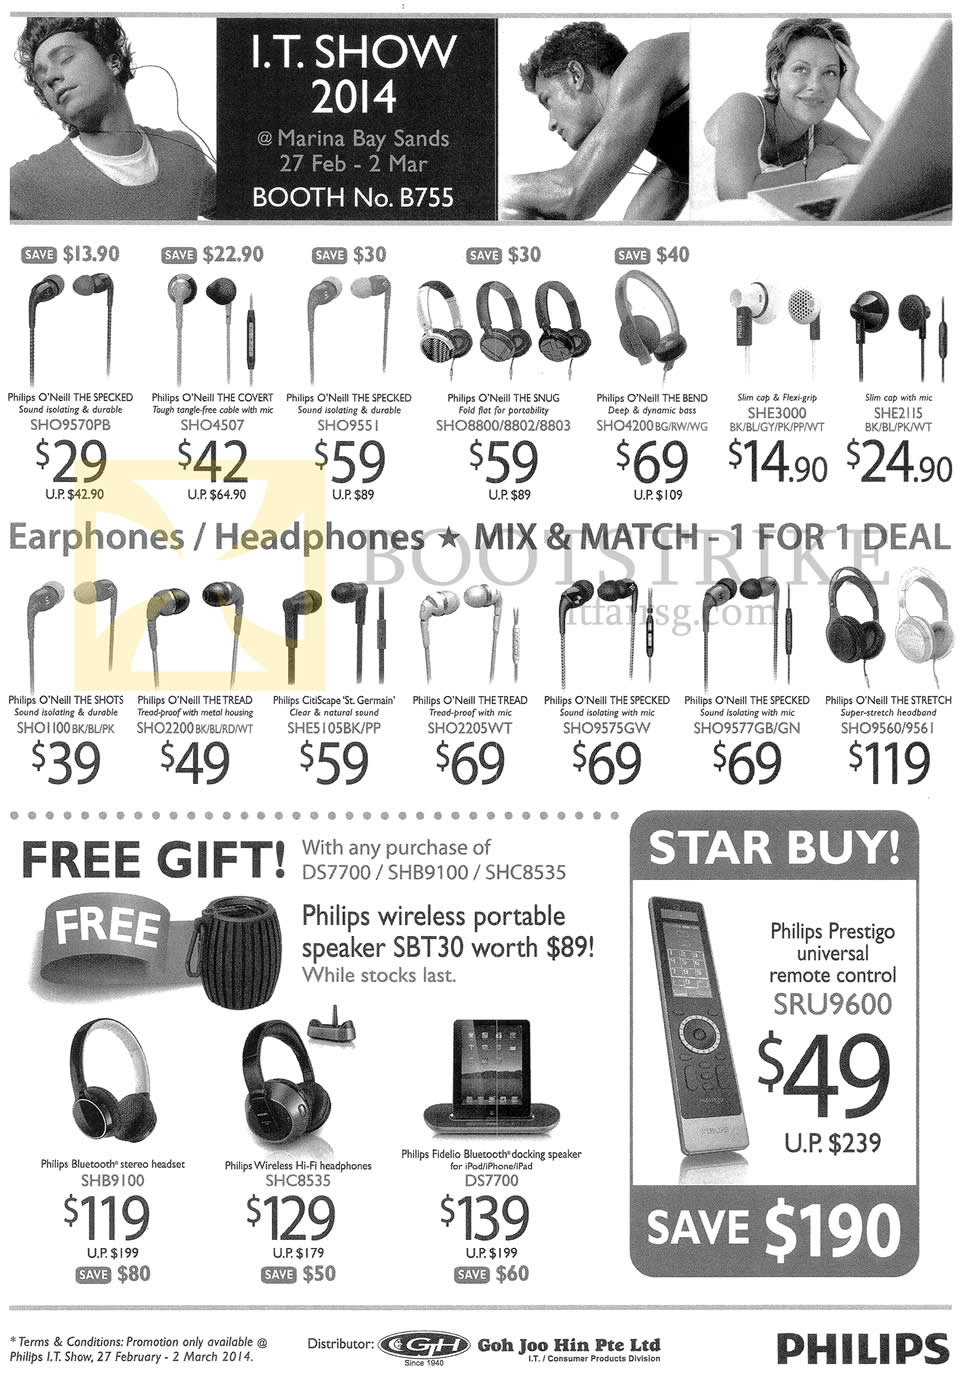 IT SHOW 2014 price list image brochure of A.D. Industries Philips Earphones, Headphones, O Neill Specked, Covert, Snug, Bend, She3000, Shots, Treat, St Germain, Stretch